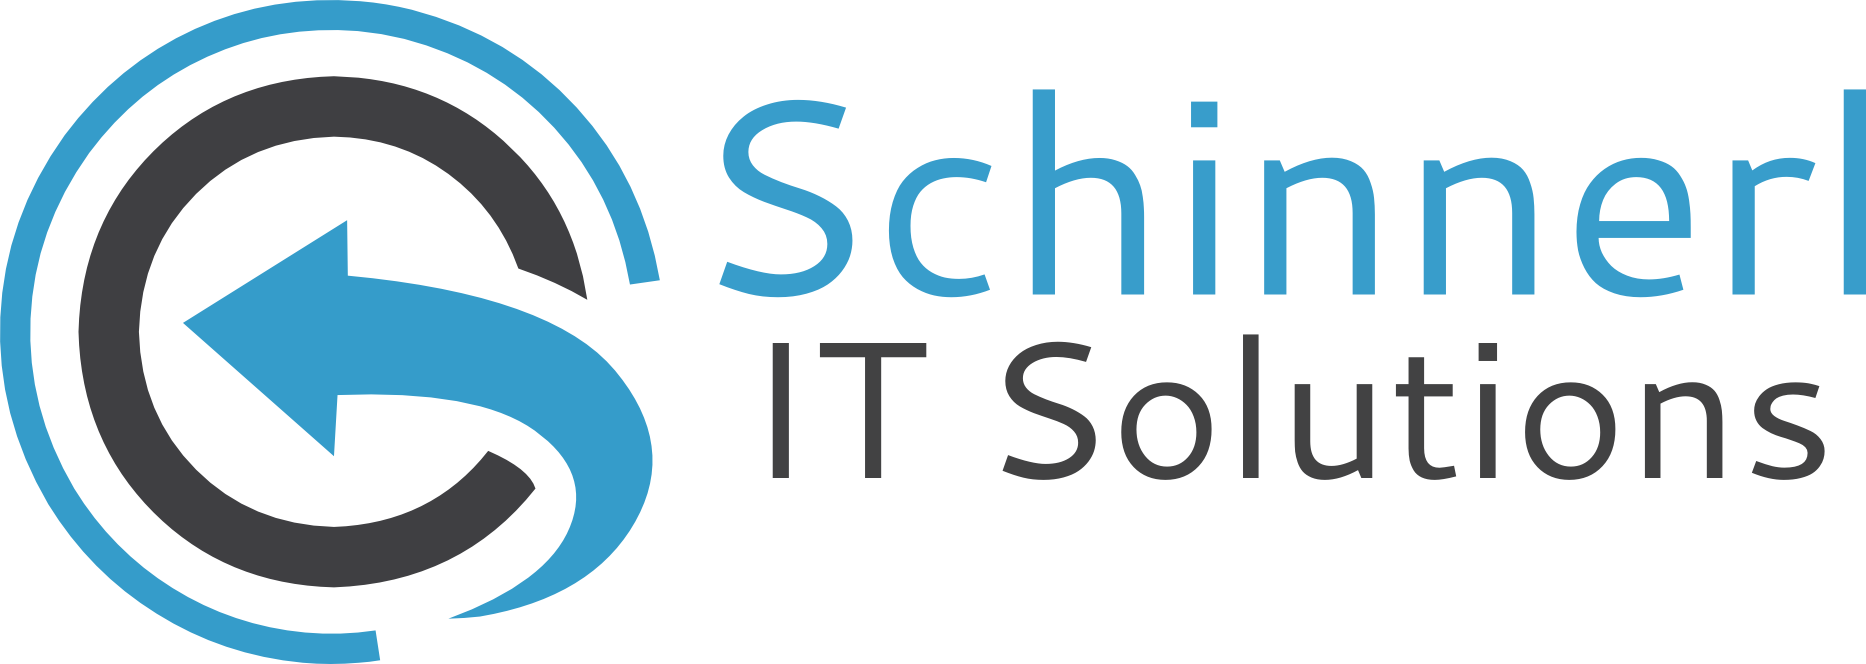 Schinnerl IT Solutions